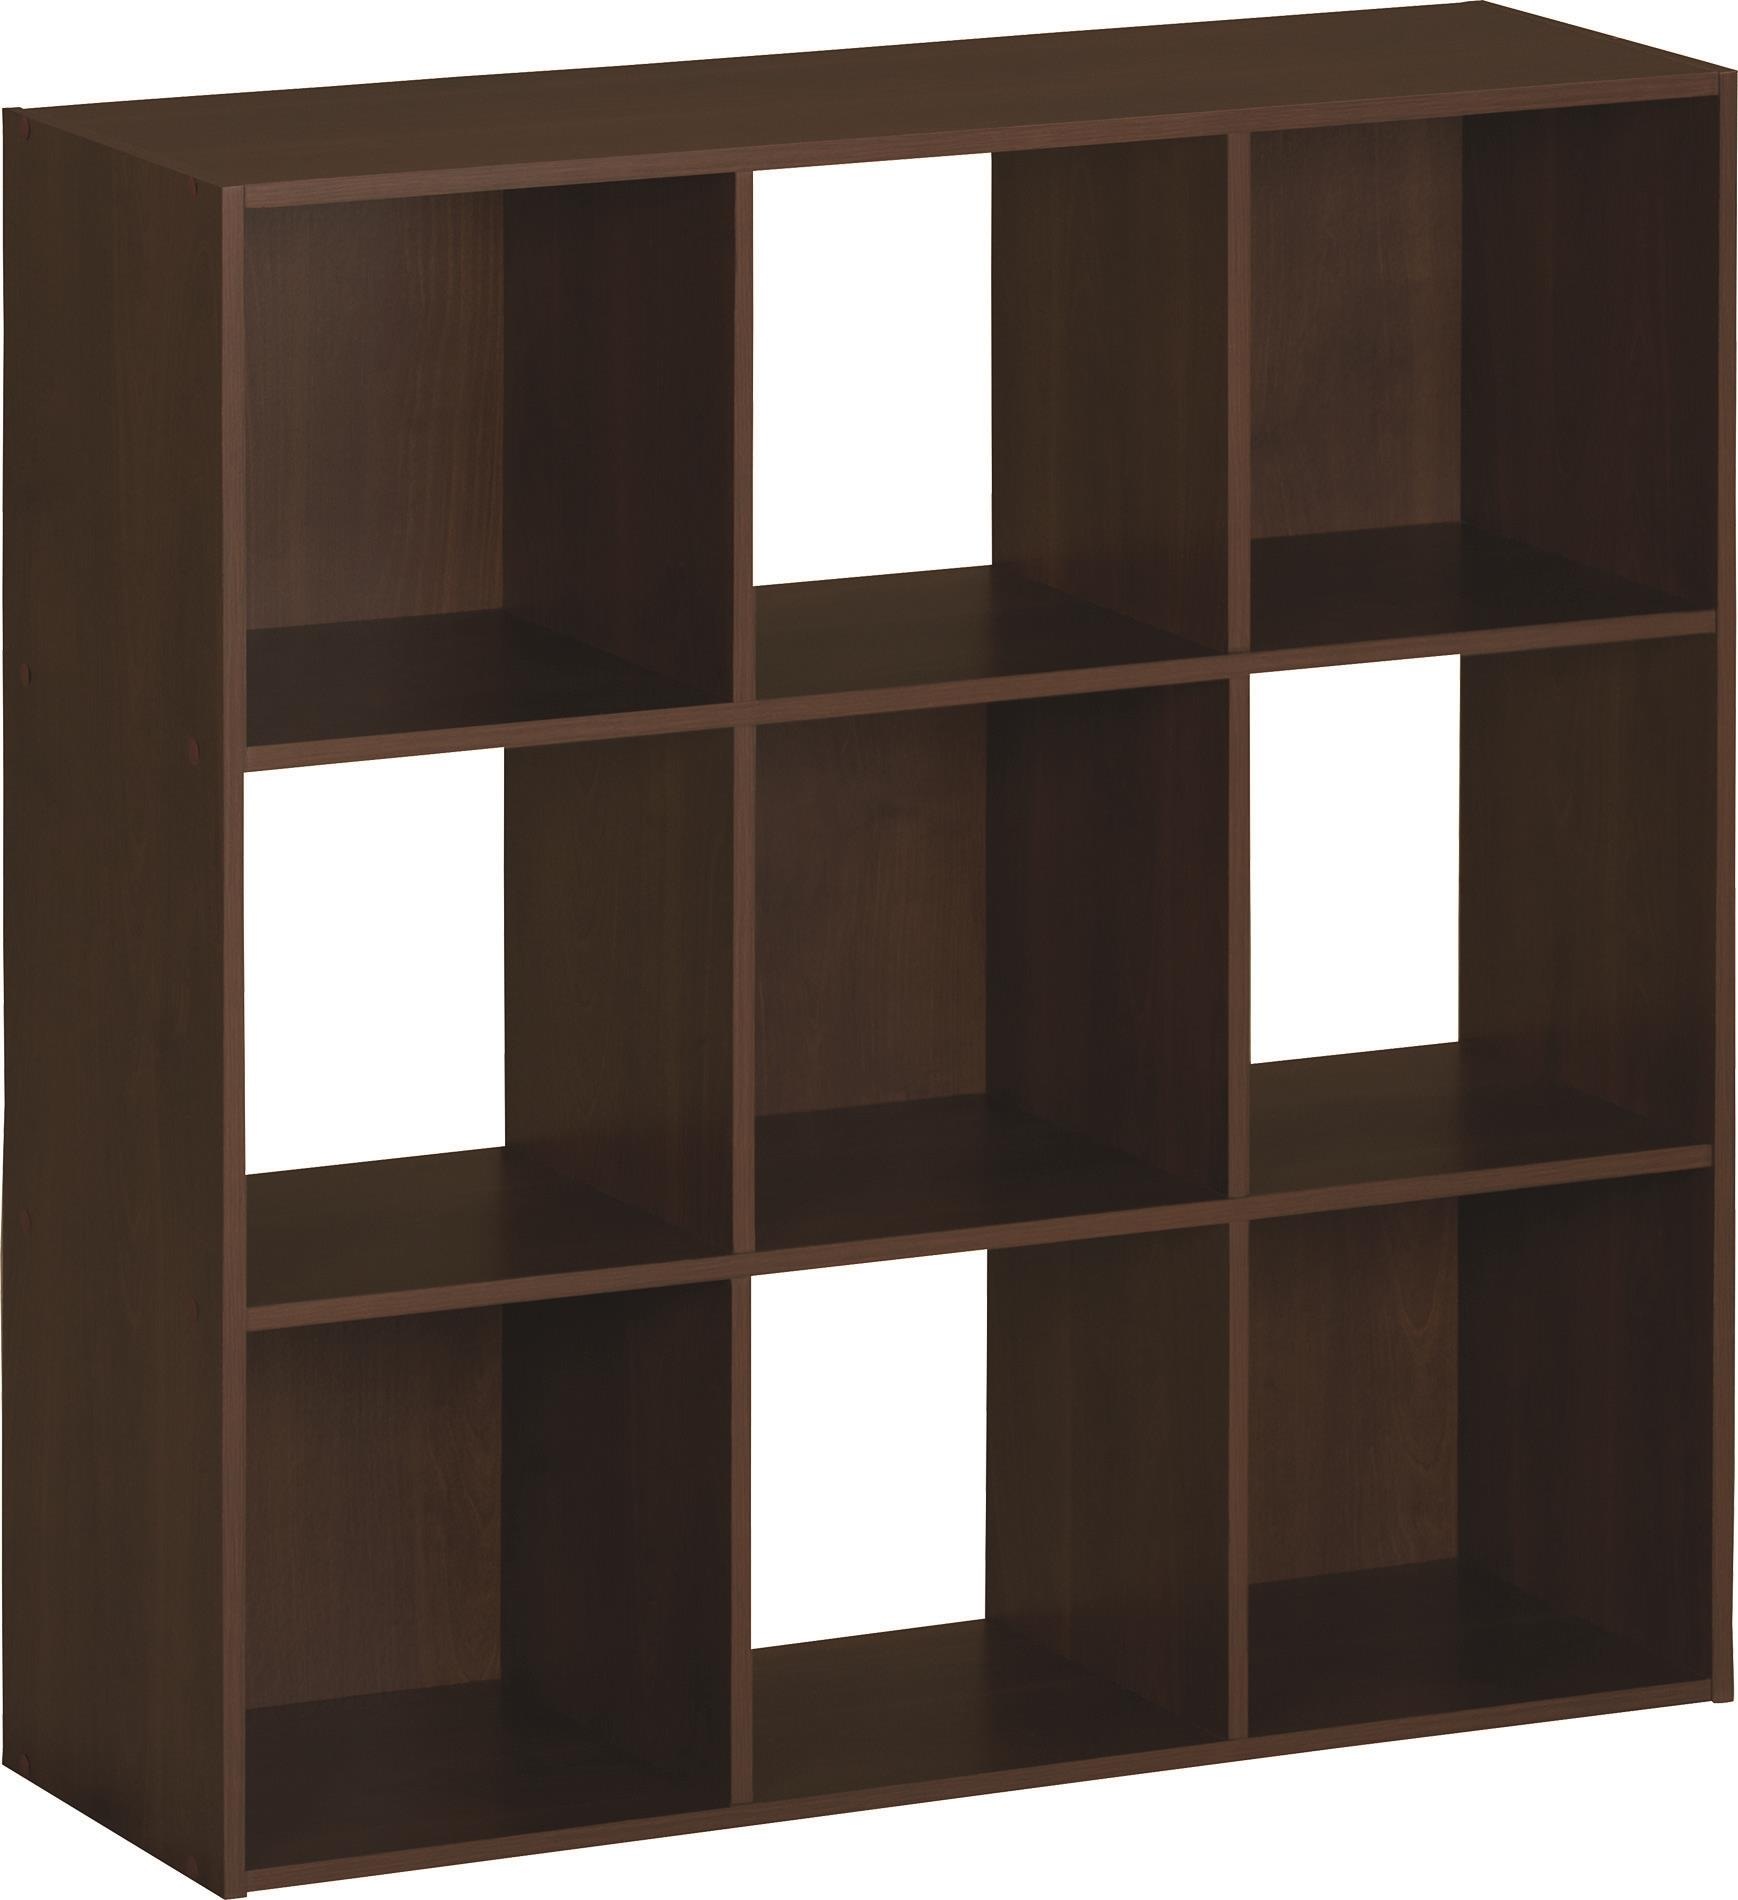 SystemBuild 9 Cube Storage Cubby Bookshelf Brown Oak & SystemBuild 9 Cube Storage Cubby Bookshelf Brown Oak - Walmart.com